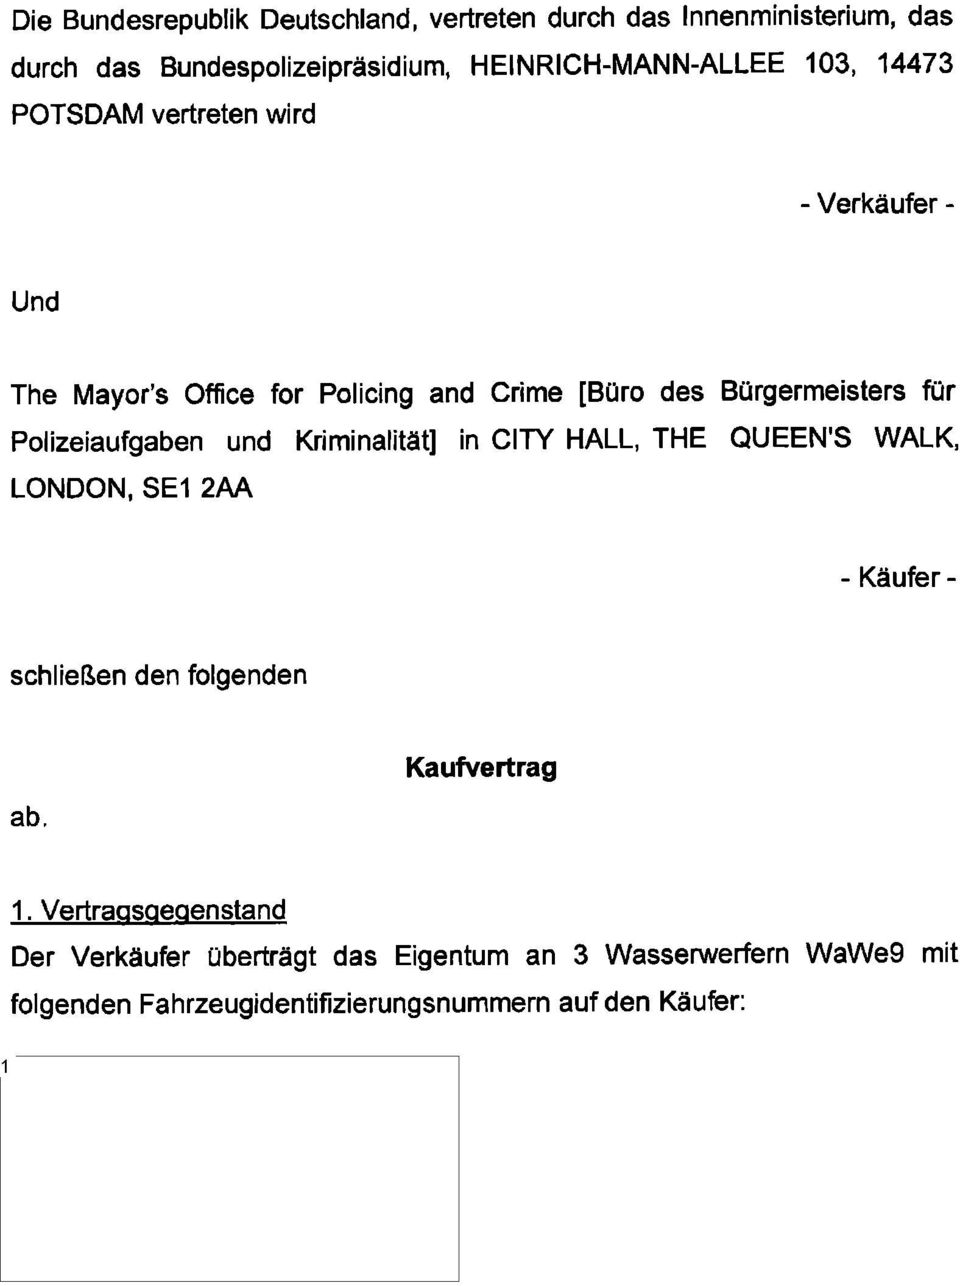 Polizeiaufgaben and Kriminalitat] in CITY HALL, THE QUEEN'S WALK, LONDON, SE1 2AA - Kaufer - schlief3en den folgenden ab. Kaufvertrag 1.